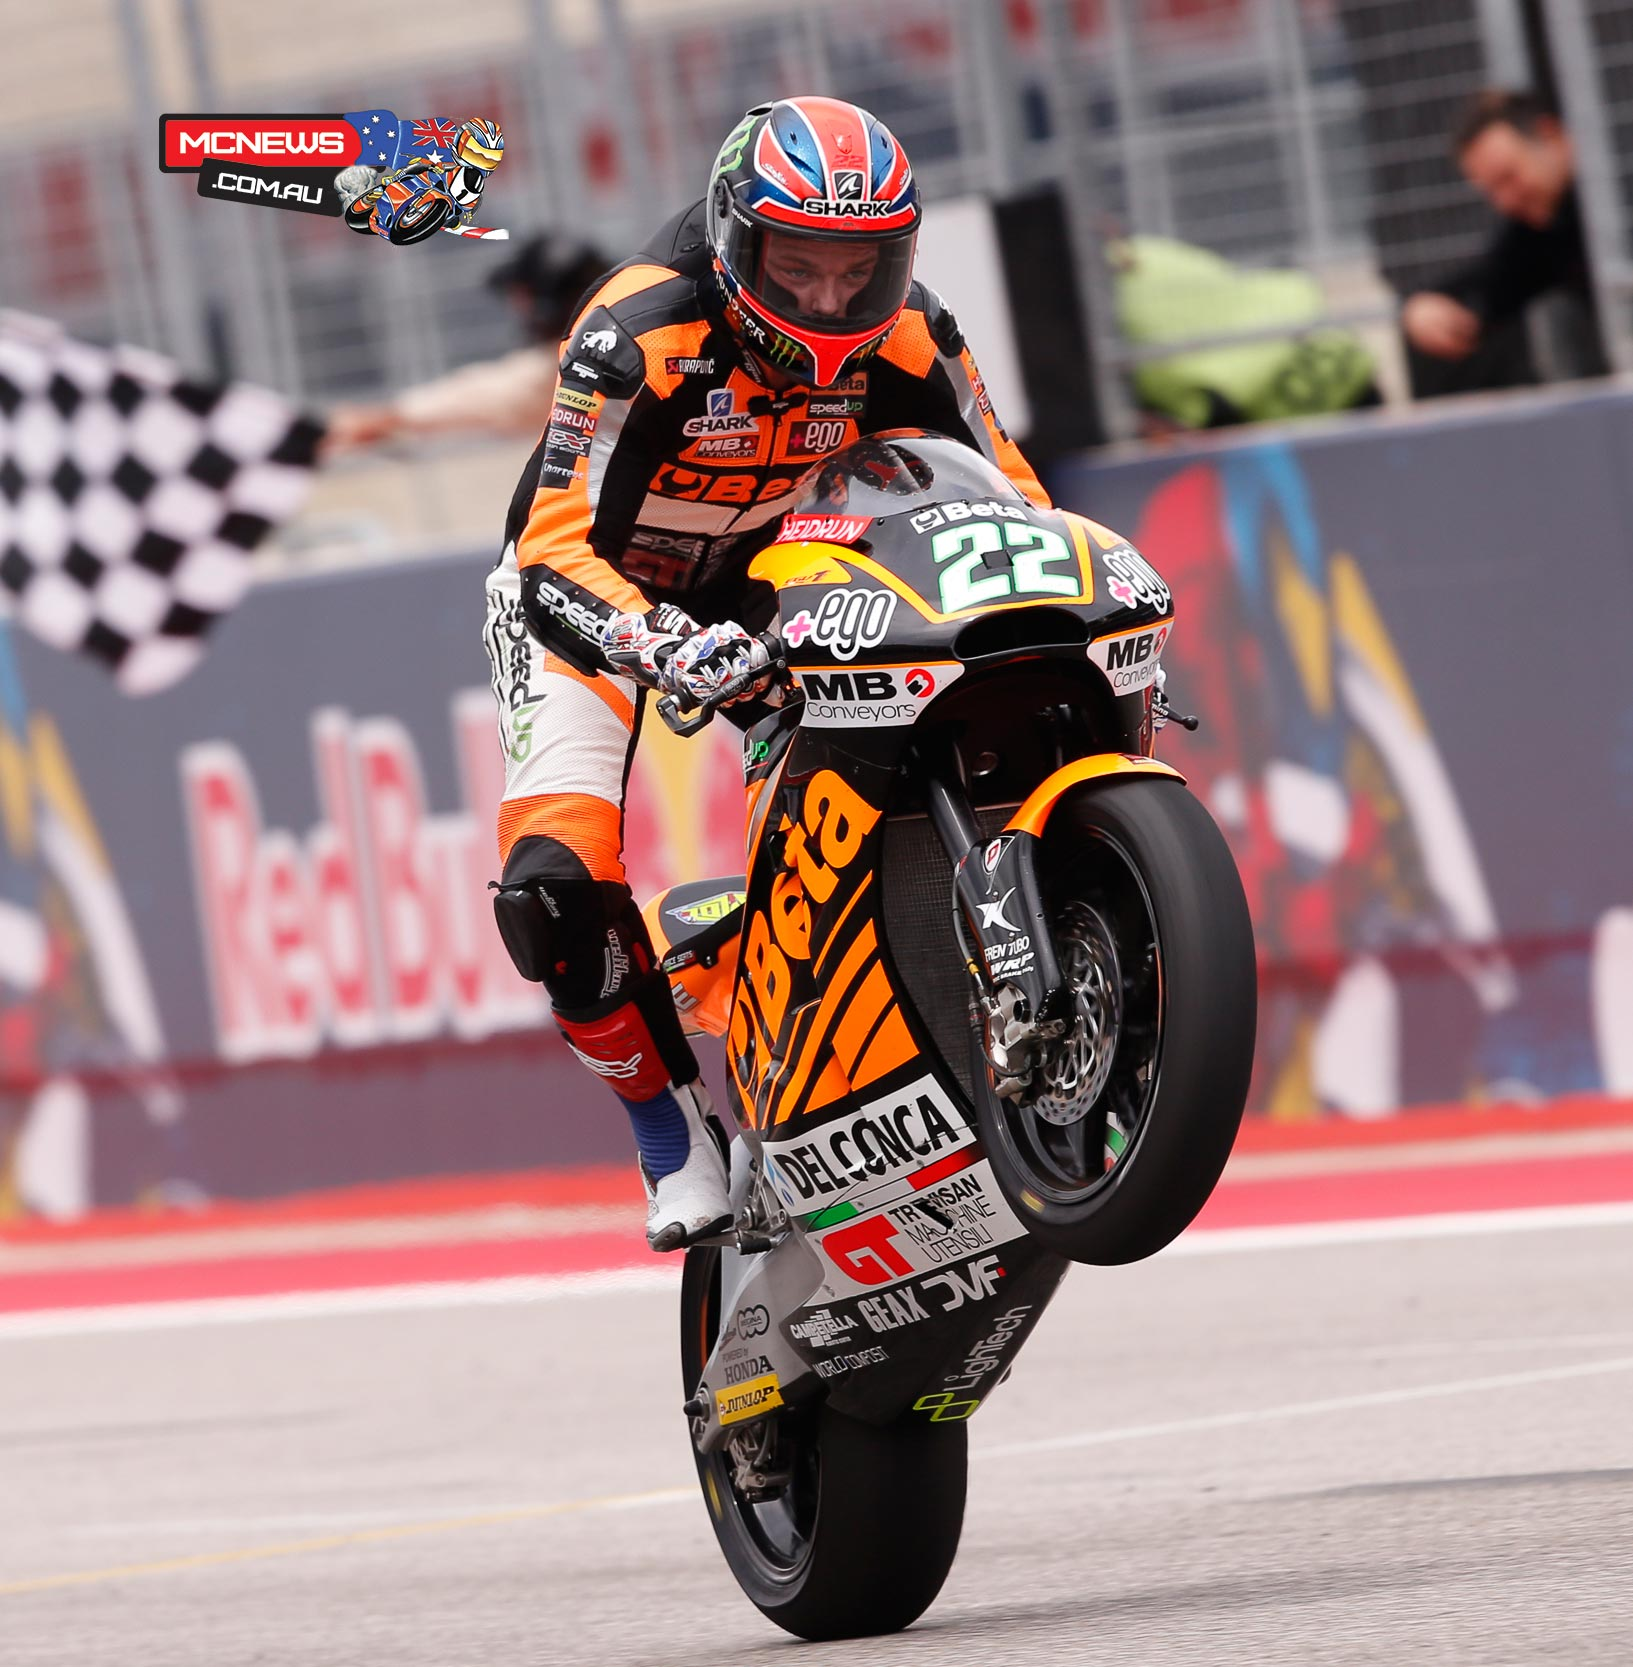 Speed Up Racing's Sam Lowes claimed his first ever Moto2 victory at the Red Bull Grand Prix of The Americas.